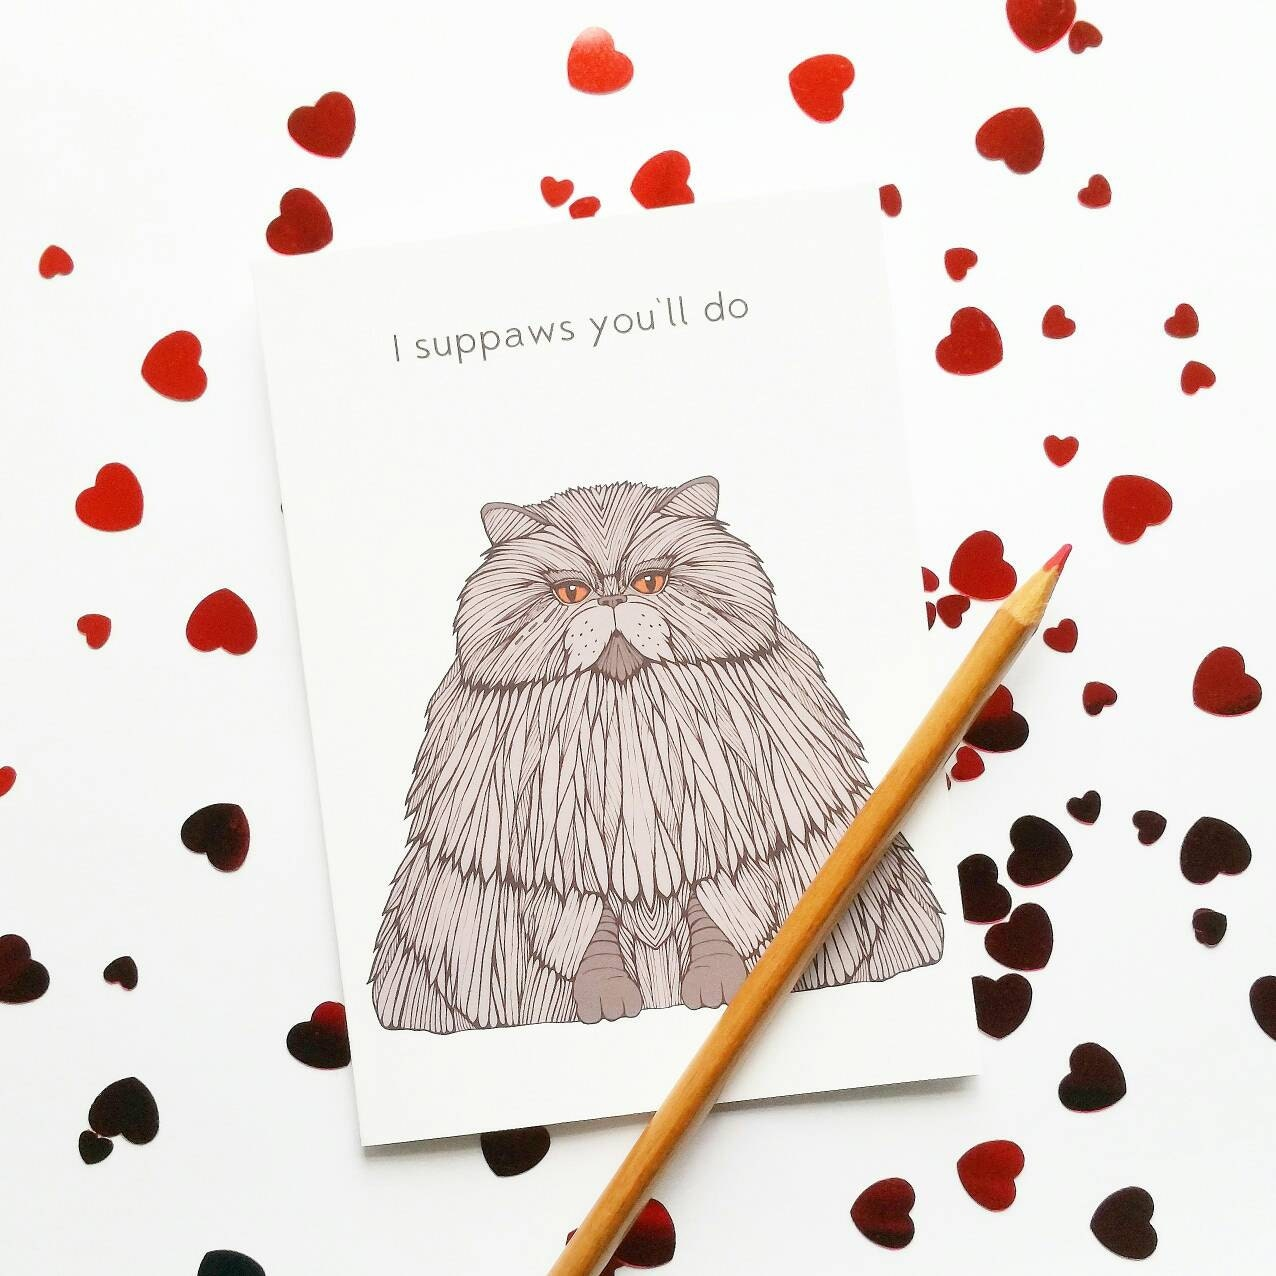 Funny Cat Valentine Card I suppaws youll do – How to Do Valentine Card